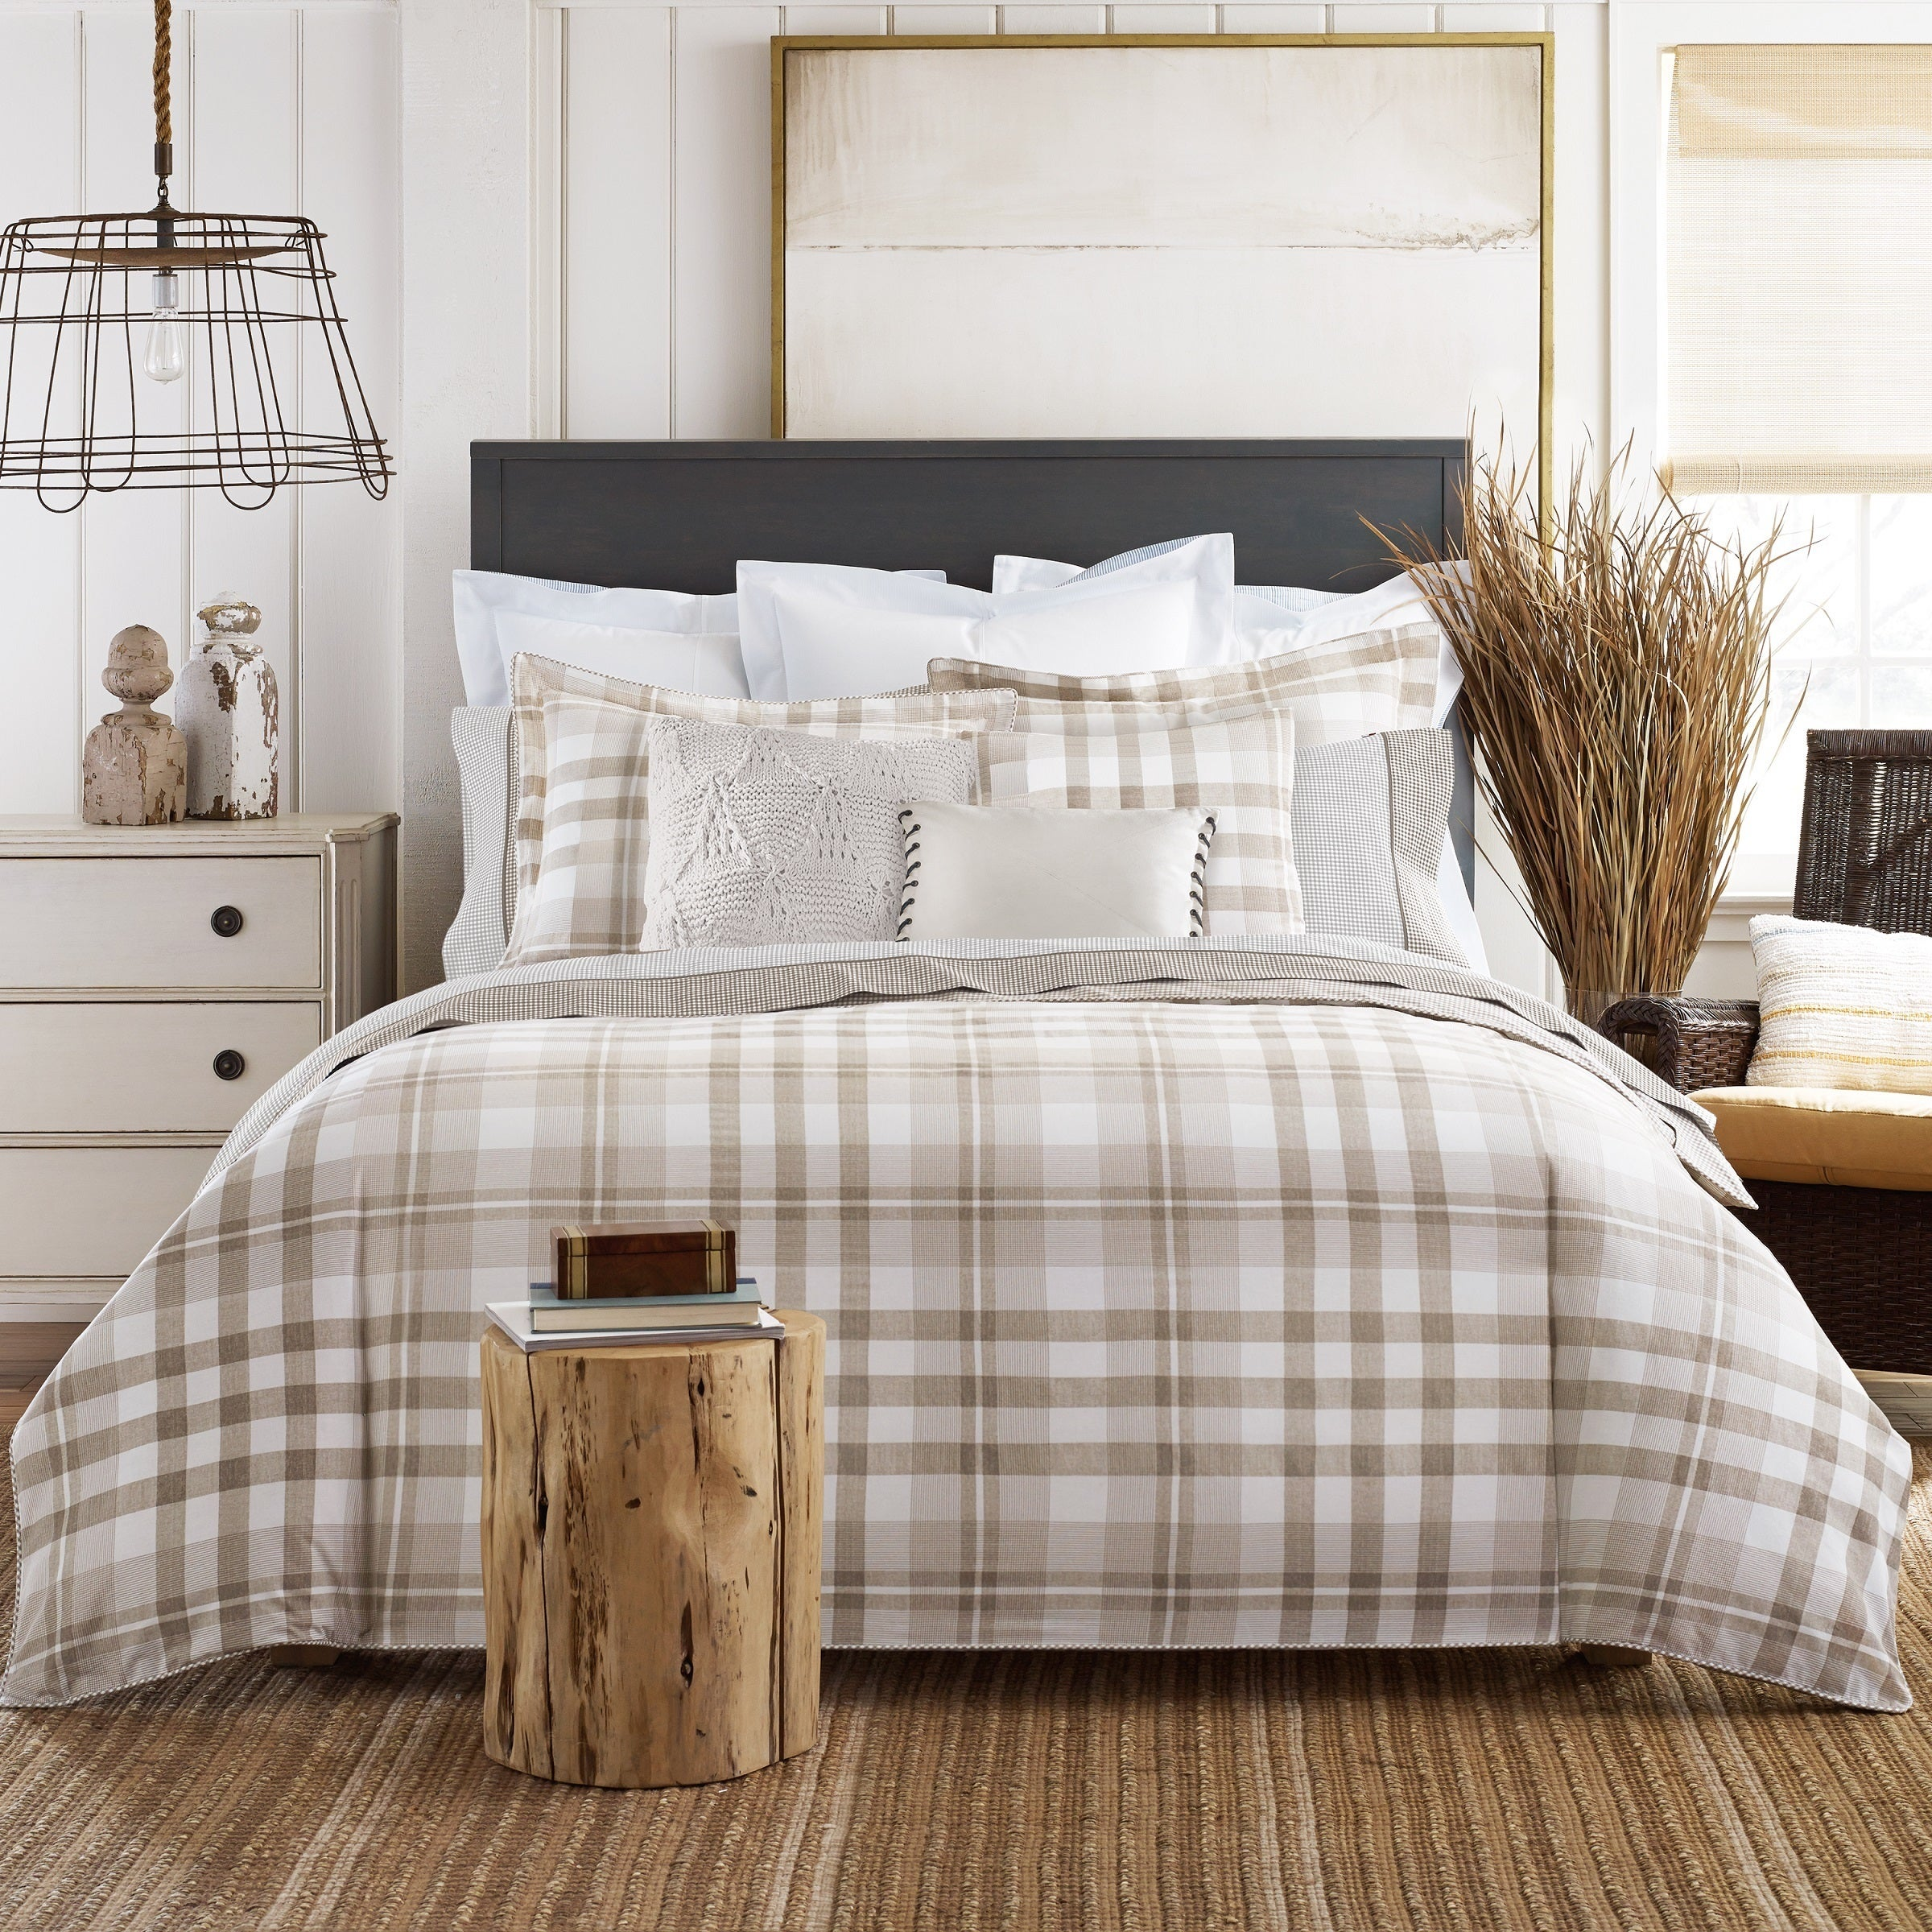 size canada home and fullamusing your cover for appealing king duvet covers decor plaid twinamusing flannel with check white black pics combine amusing